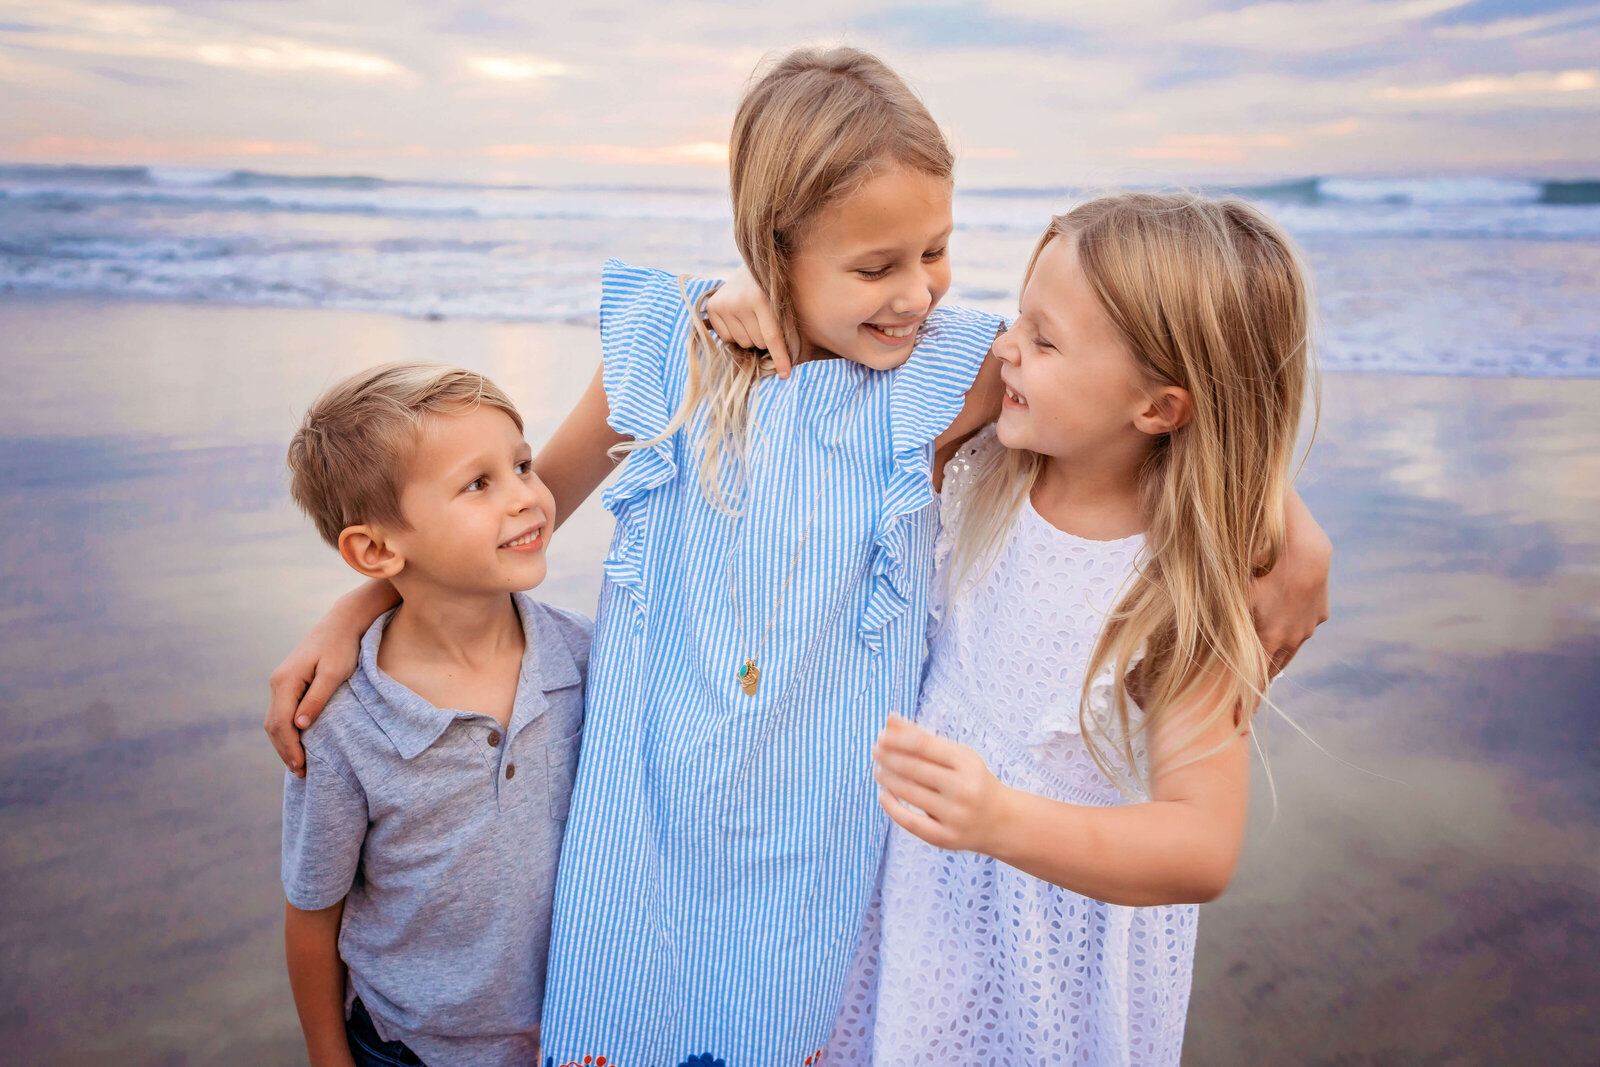 Encinitas Family Photographer 13